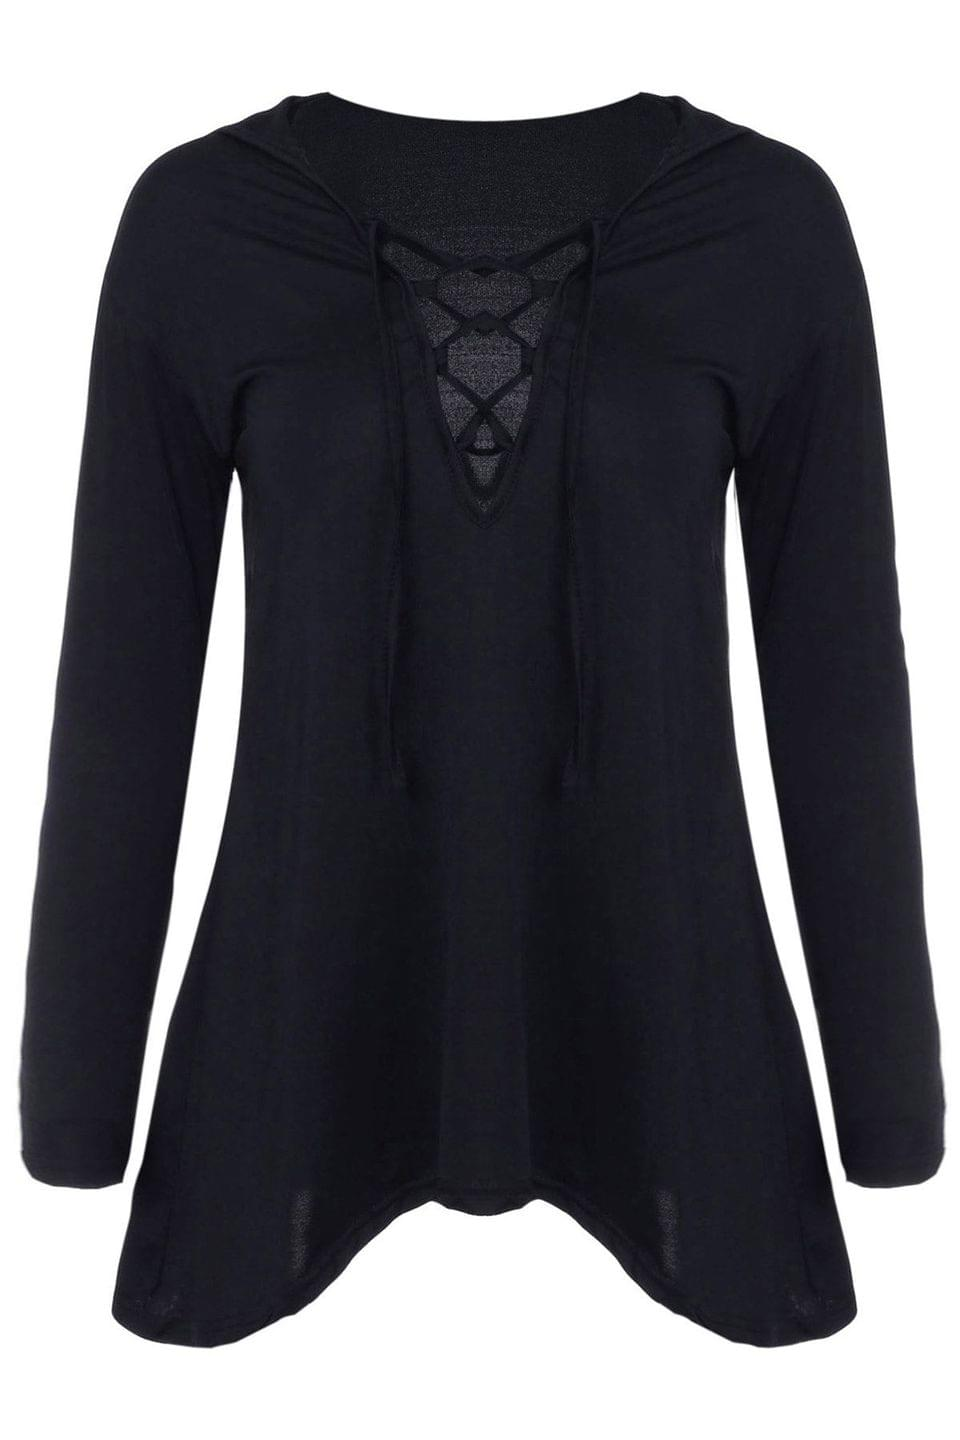 Women's Hooded Irregular Hem Black T-Shirt - Black S